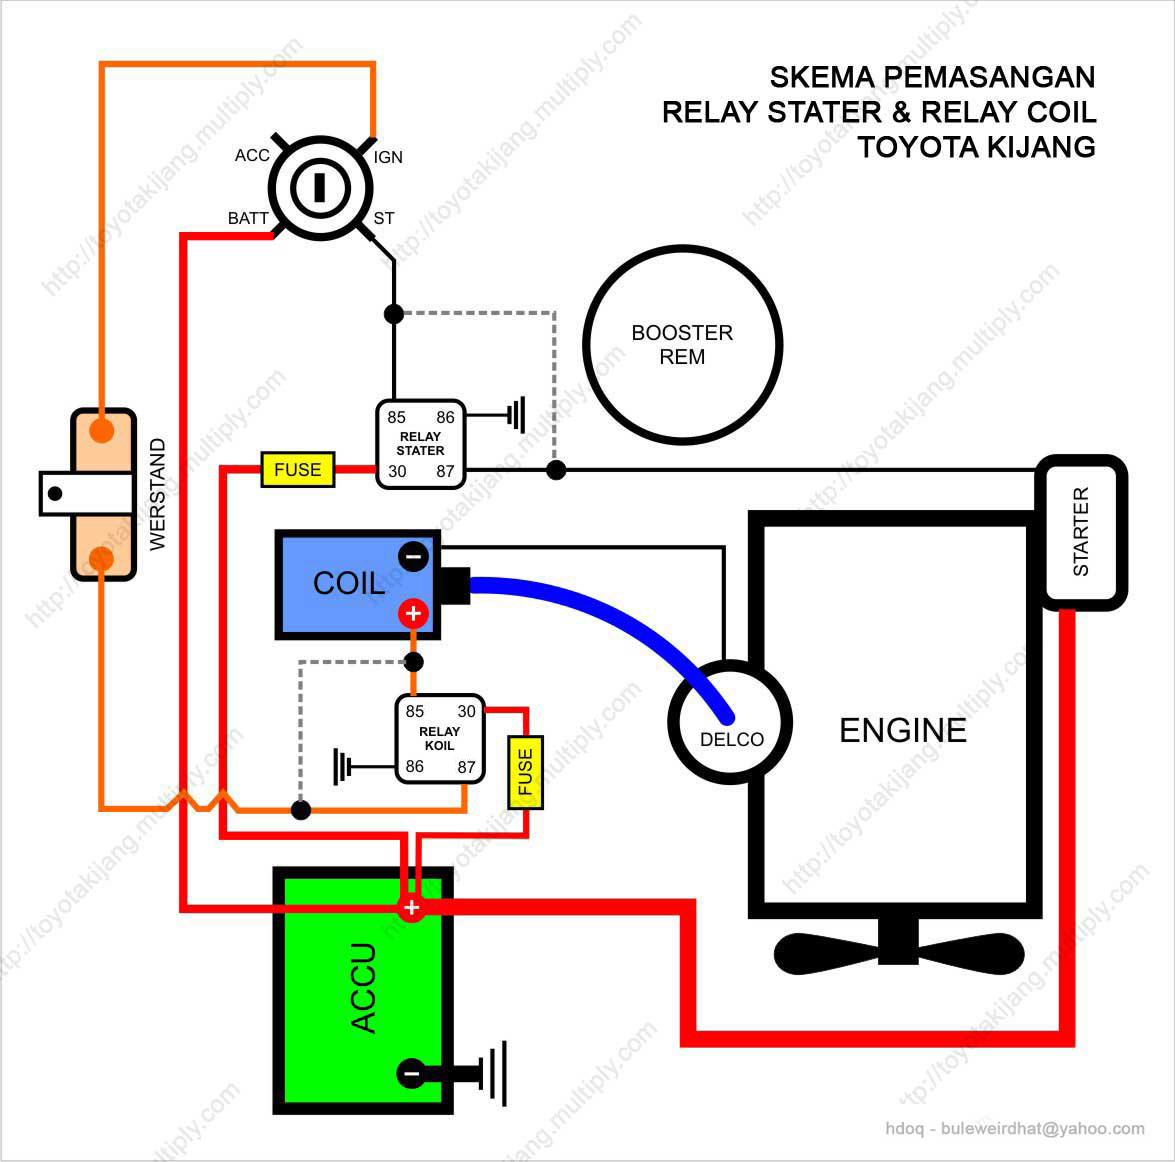 medium resolution of wiring diagram toyota kijang 7k efi wiring library rh 88 webseiten archiv de harga mobil bekas toyota kijang super toyota kijang 1996